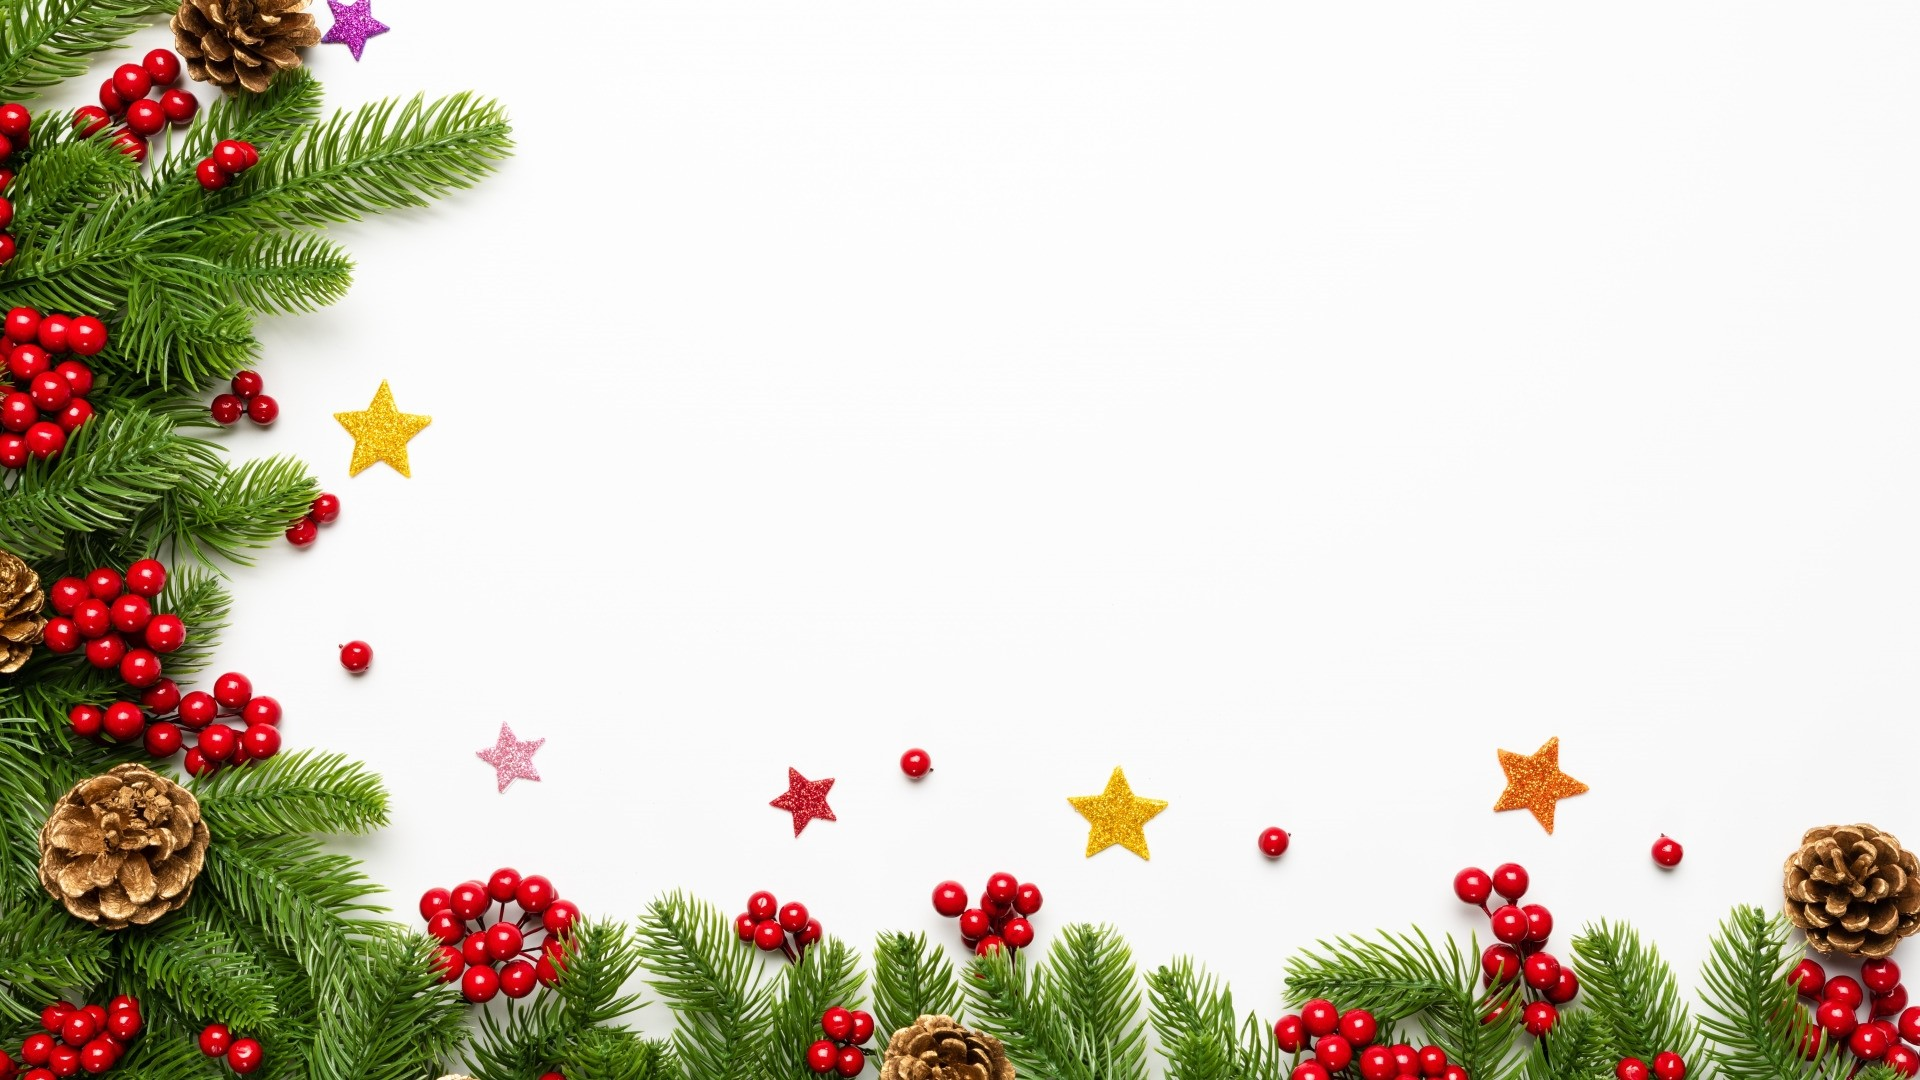 New Year Branch Frame Wallpaper image hd